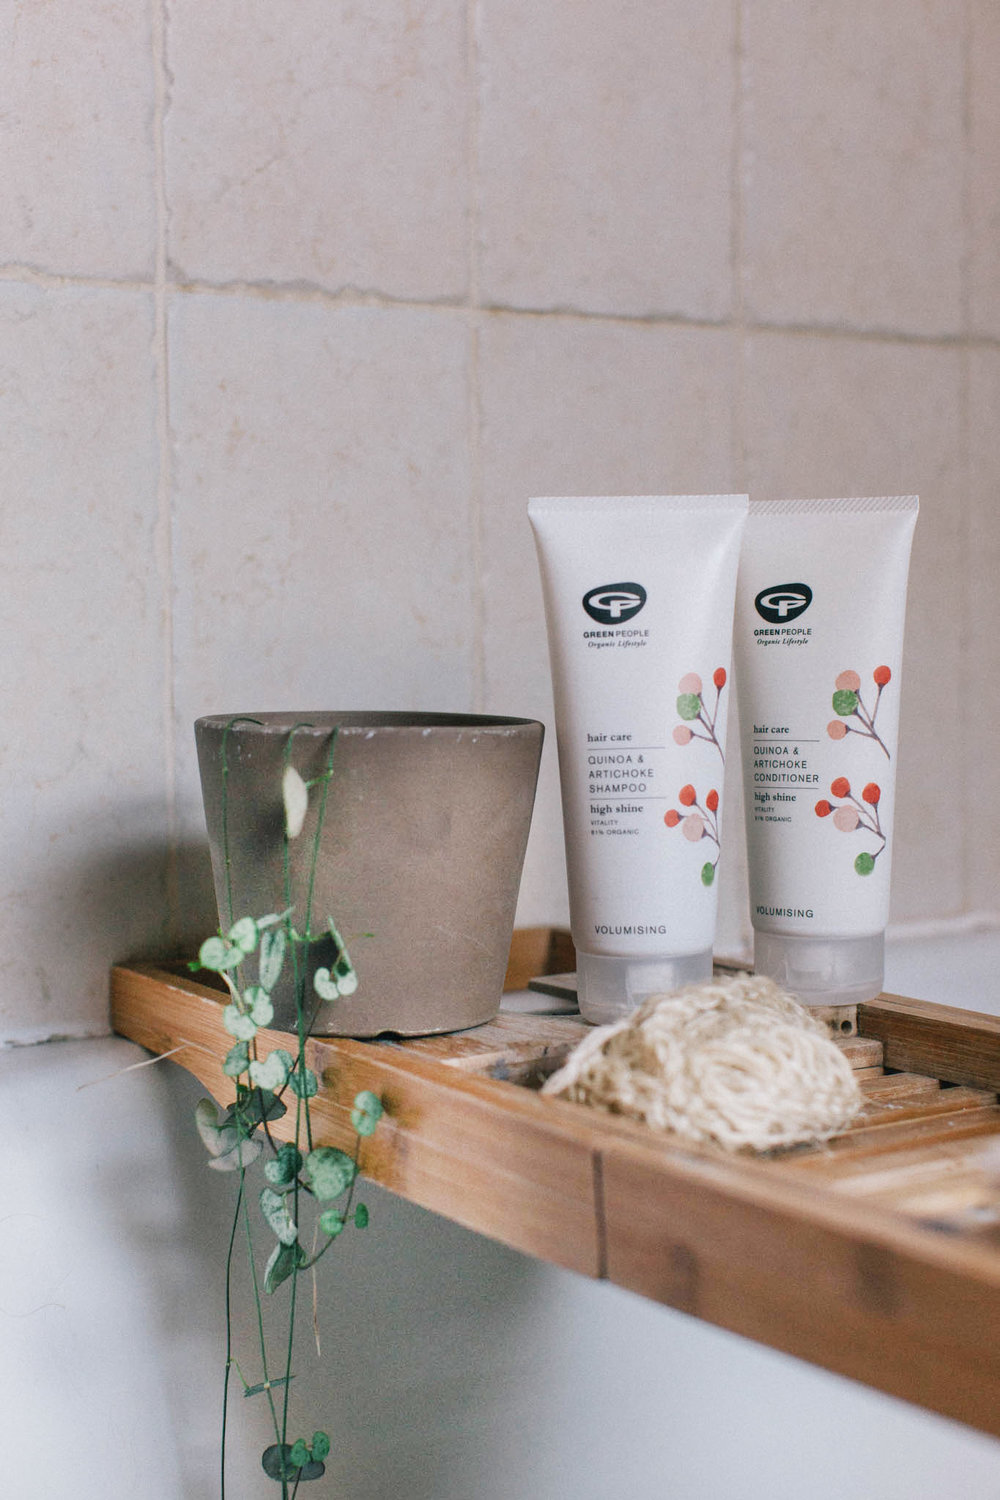 Green People Quinoa and artichoke organic hair care range review. Retreat // a food and lifestyle blog focusing on well being and natural skin care.